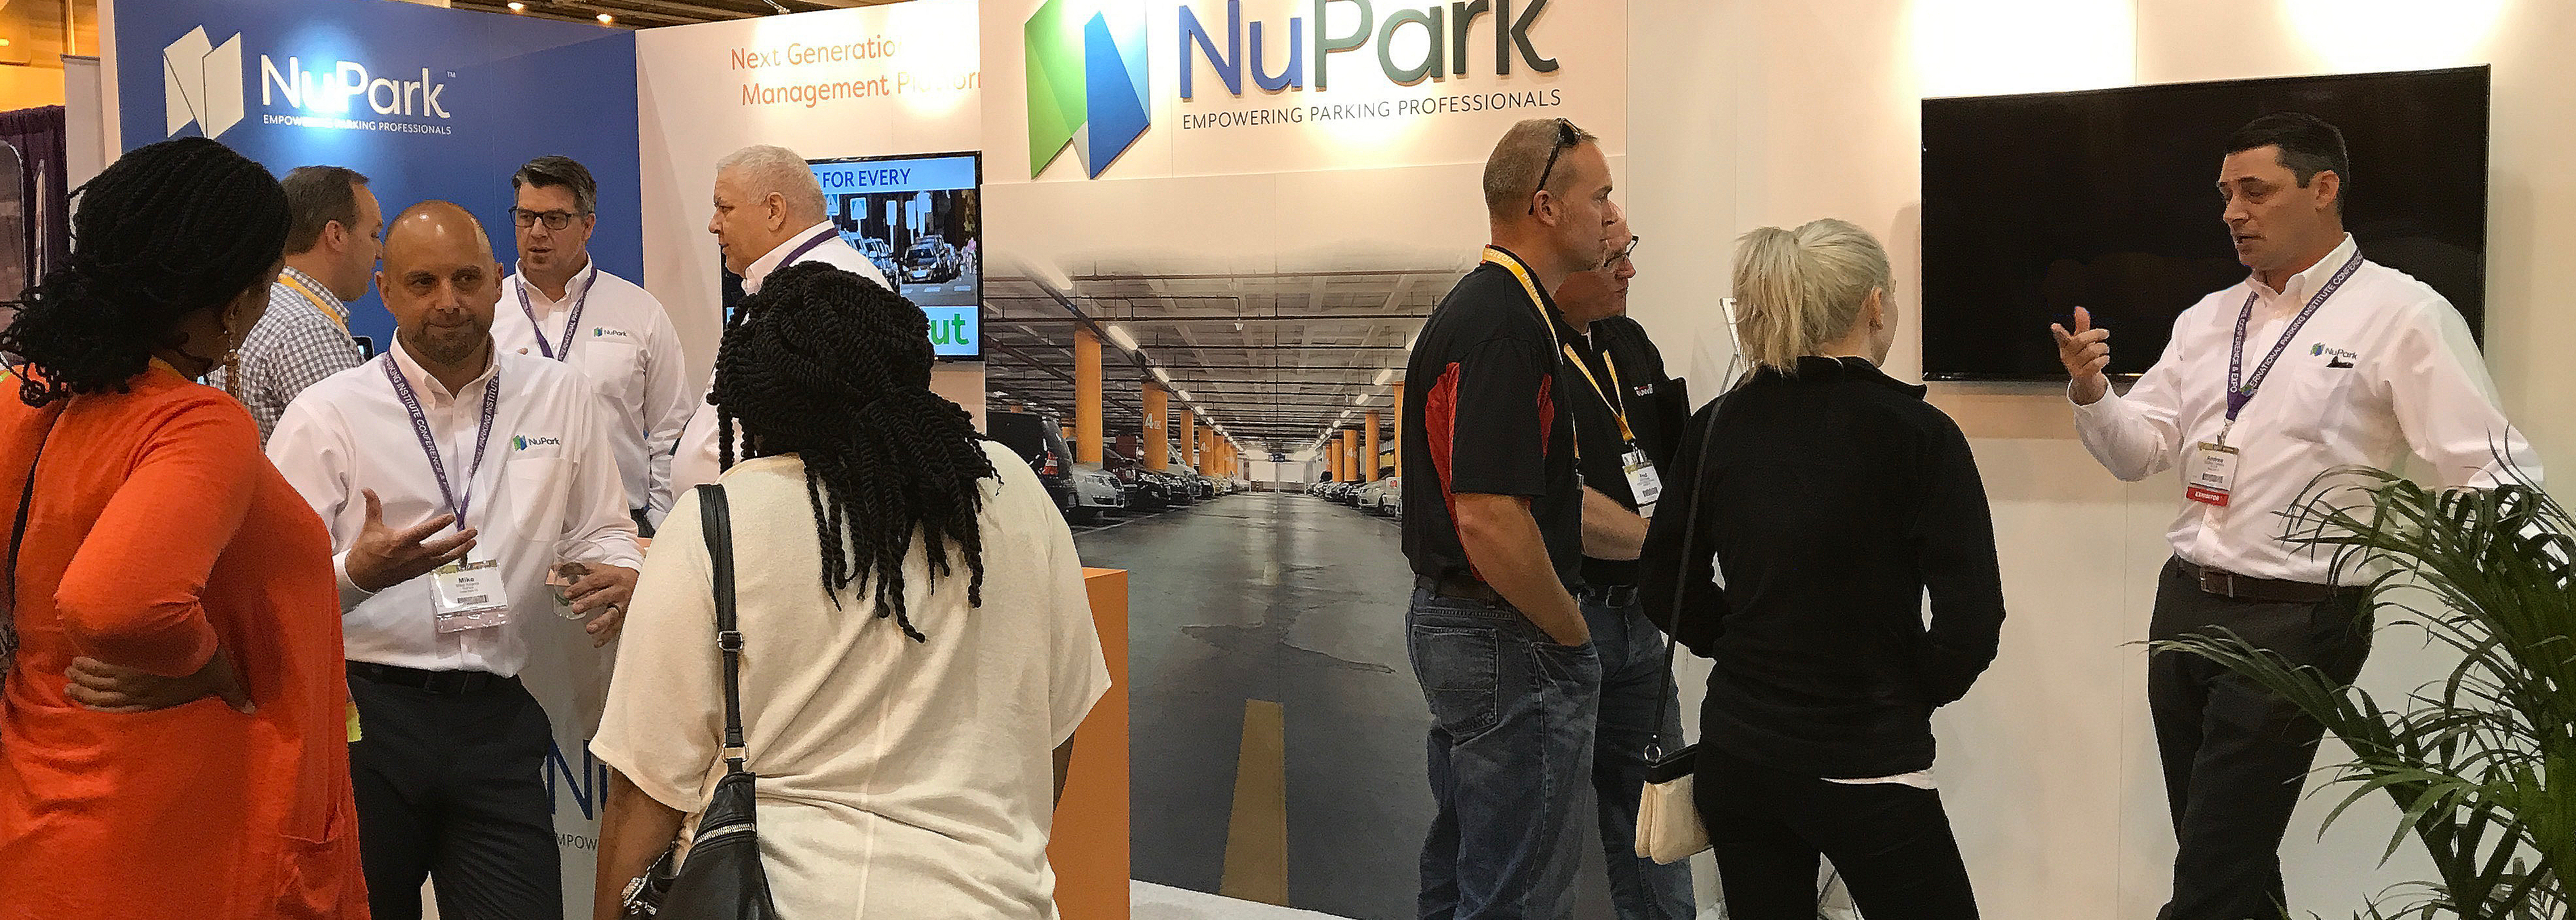 a group of NuPark staff dressed in white talking to groups of people around a booth area